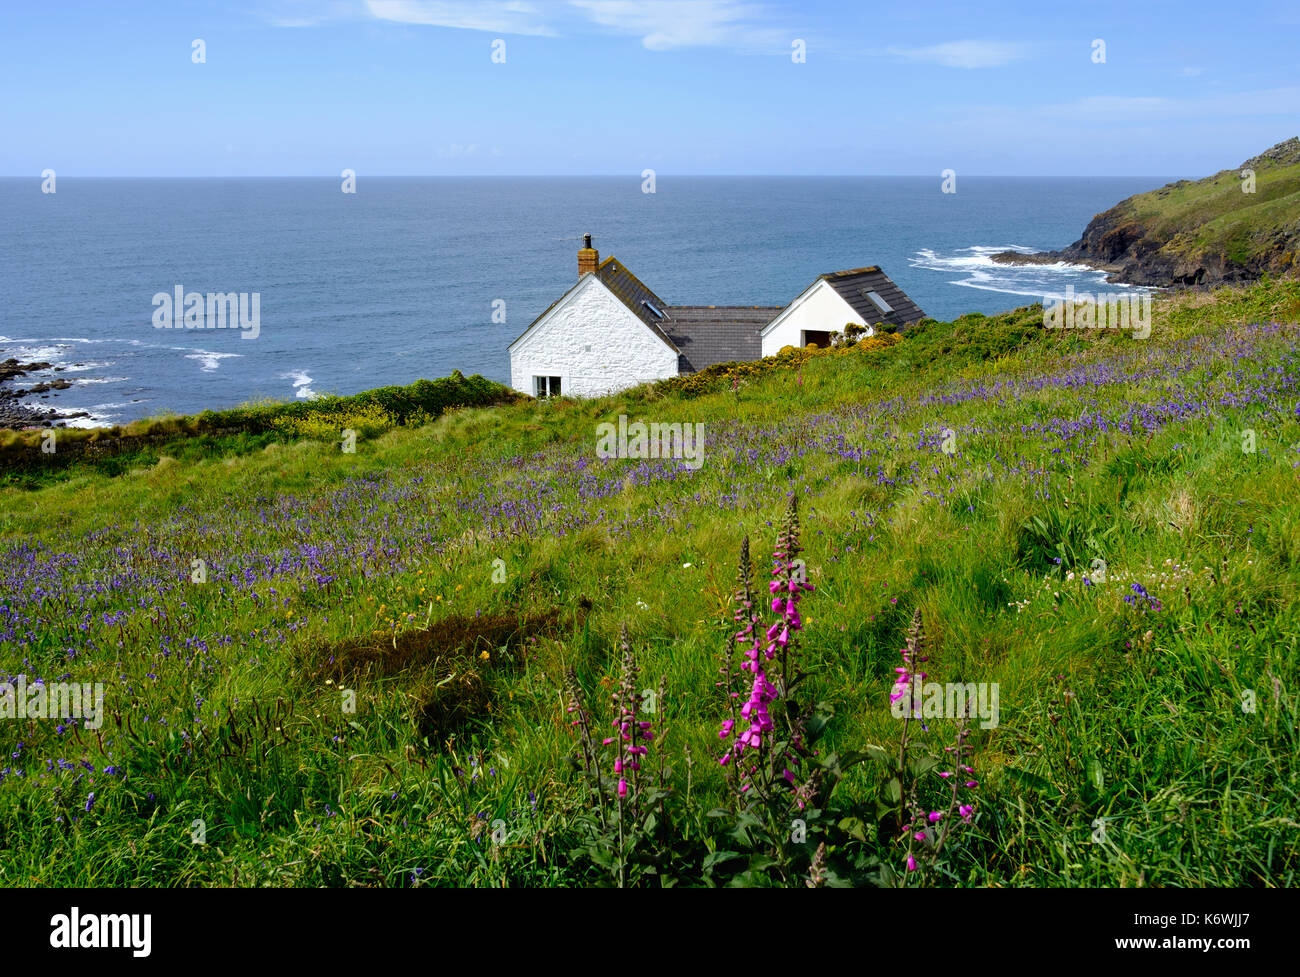 House on cliffs, Cape Cornwall, near St Just in Penwith, Cornwall, England, Great Britain Stock Photo